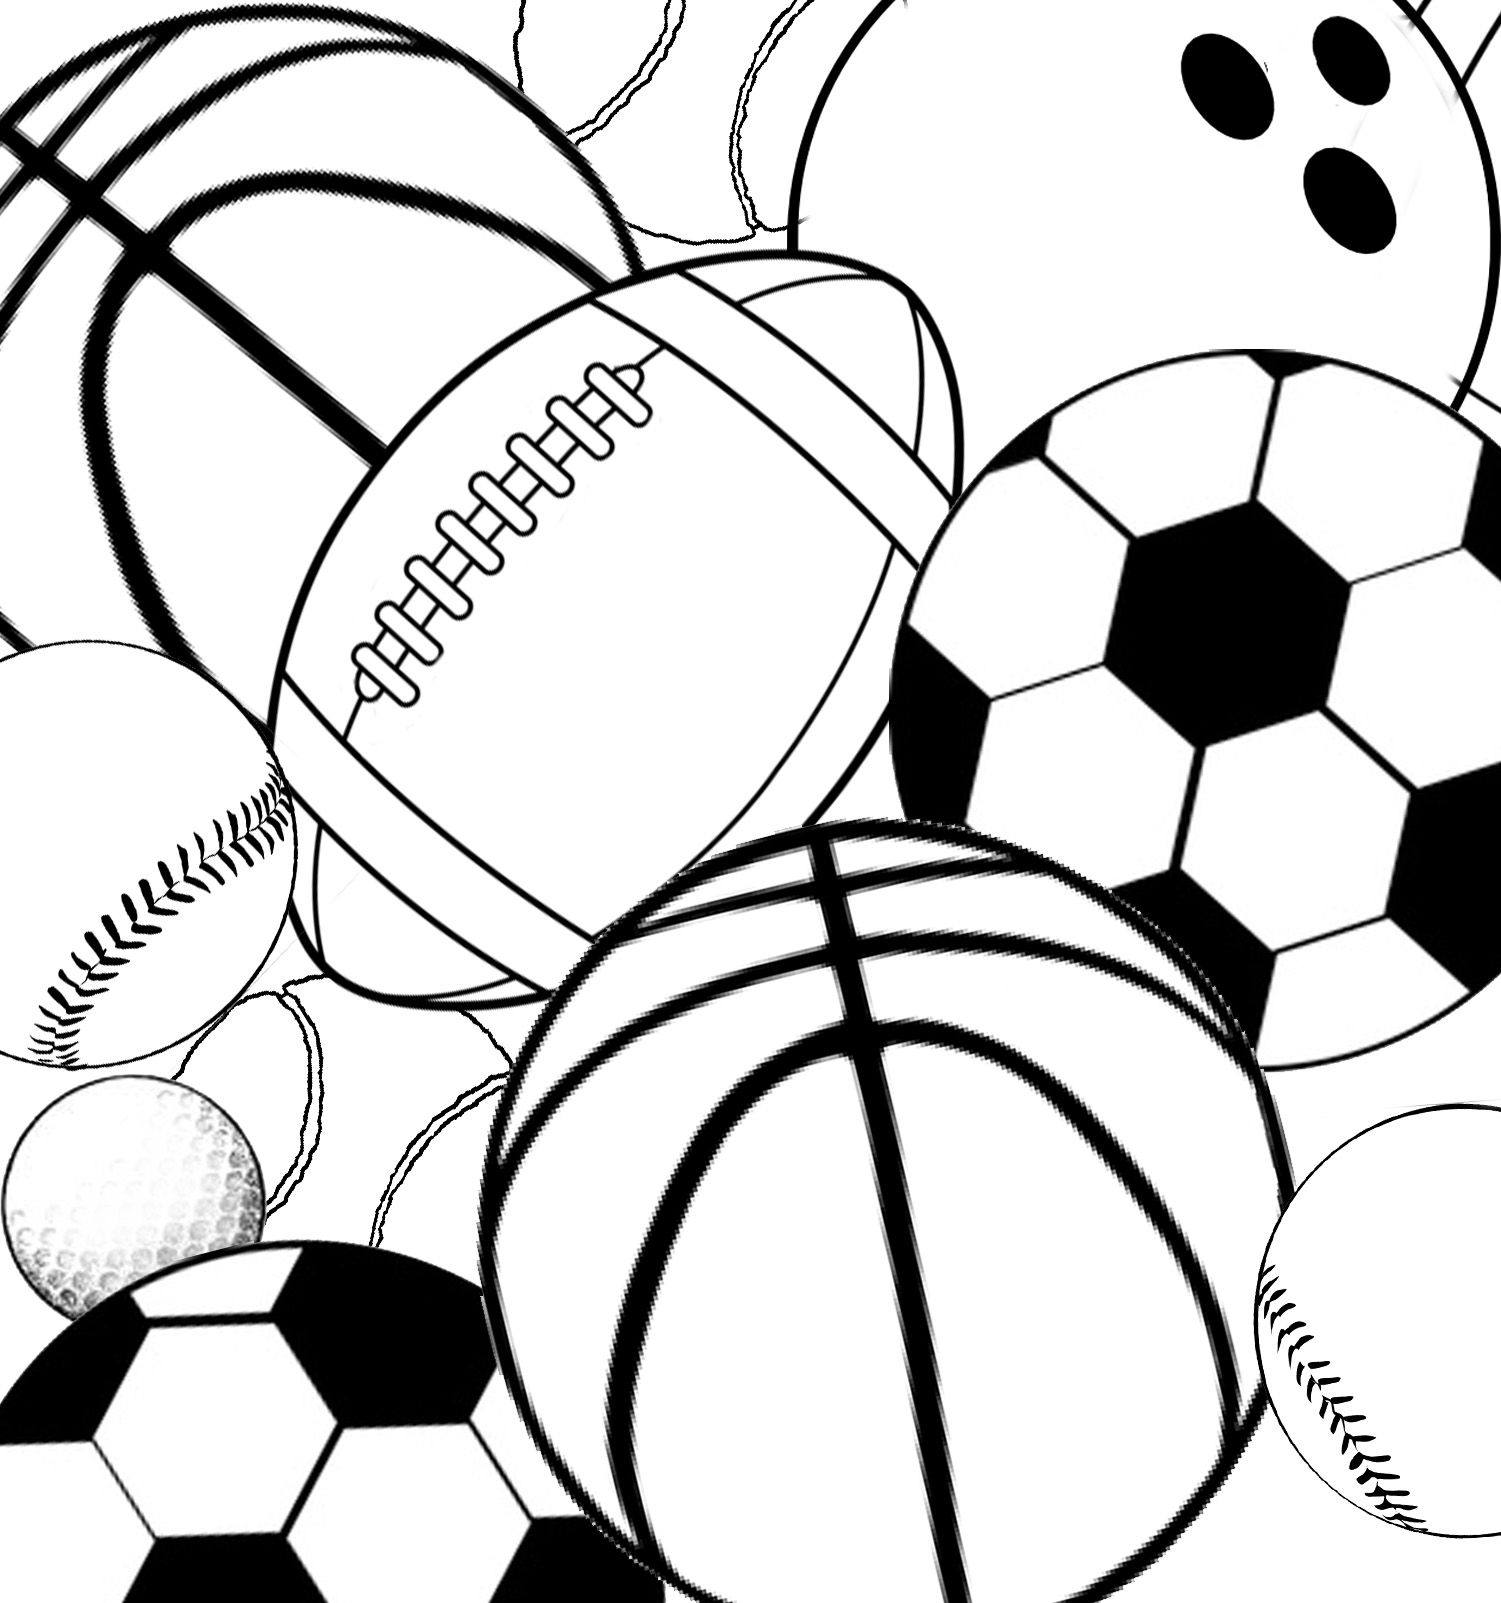 Sports Equipment Coloring Pages At Getcolorings